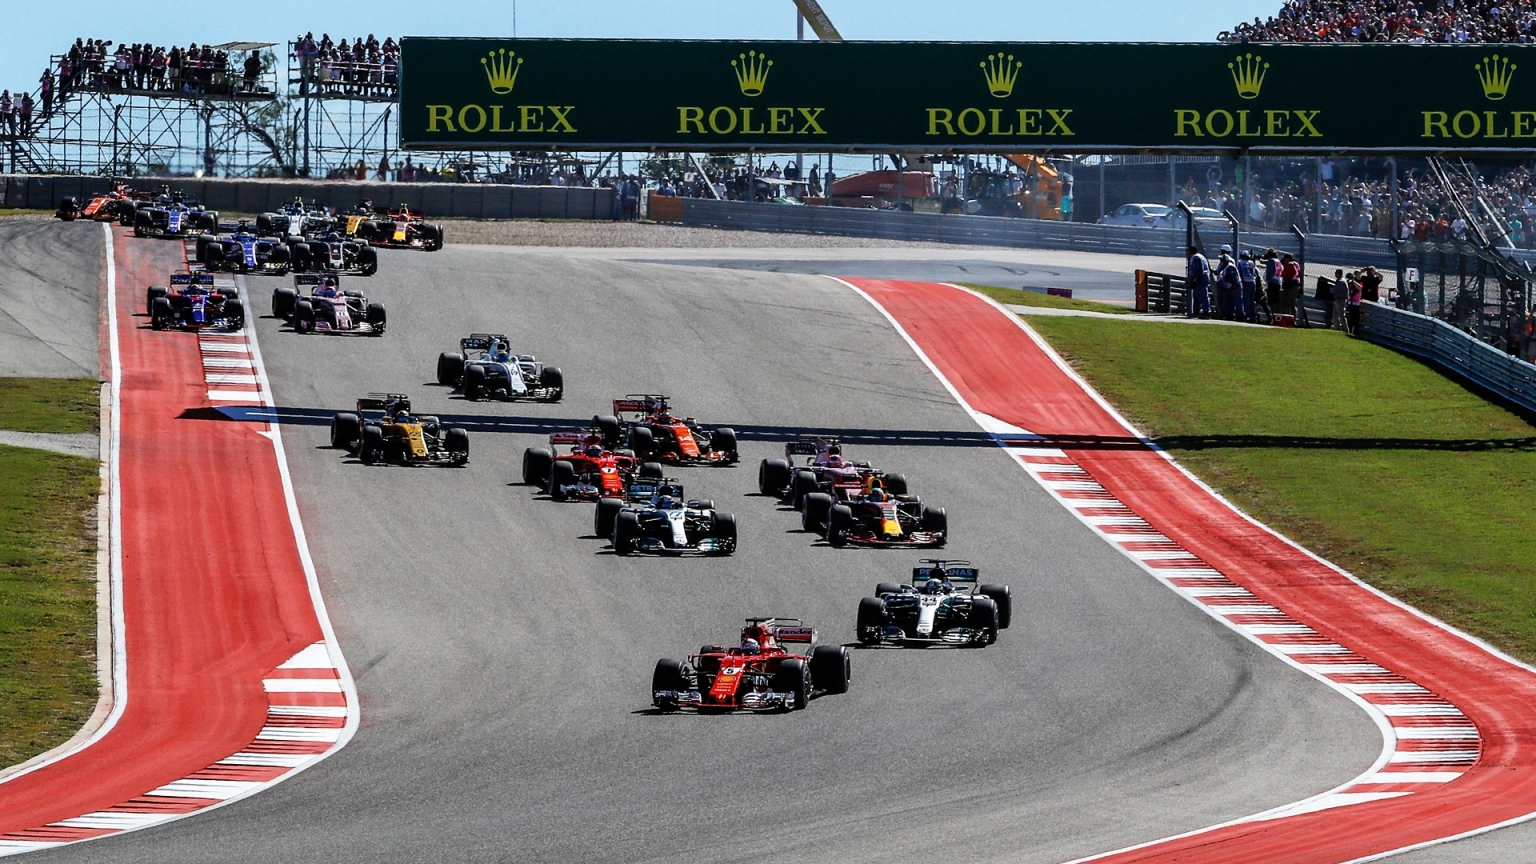 0bbb81ba9b What You Need to Know for the 2018 Formula One Grand Prix at the Circuit of  the Americas - The Engine Block